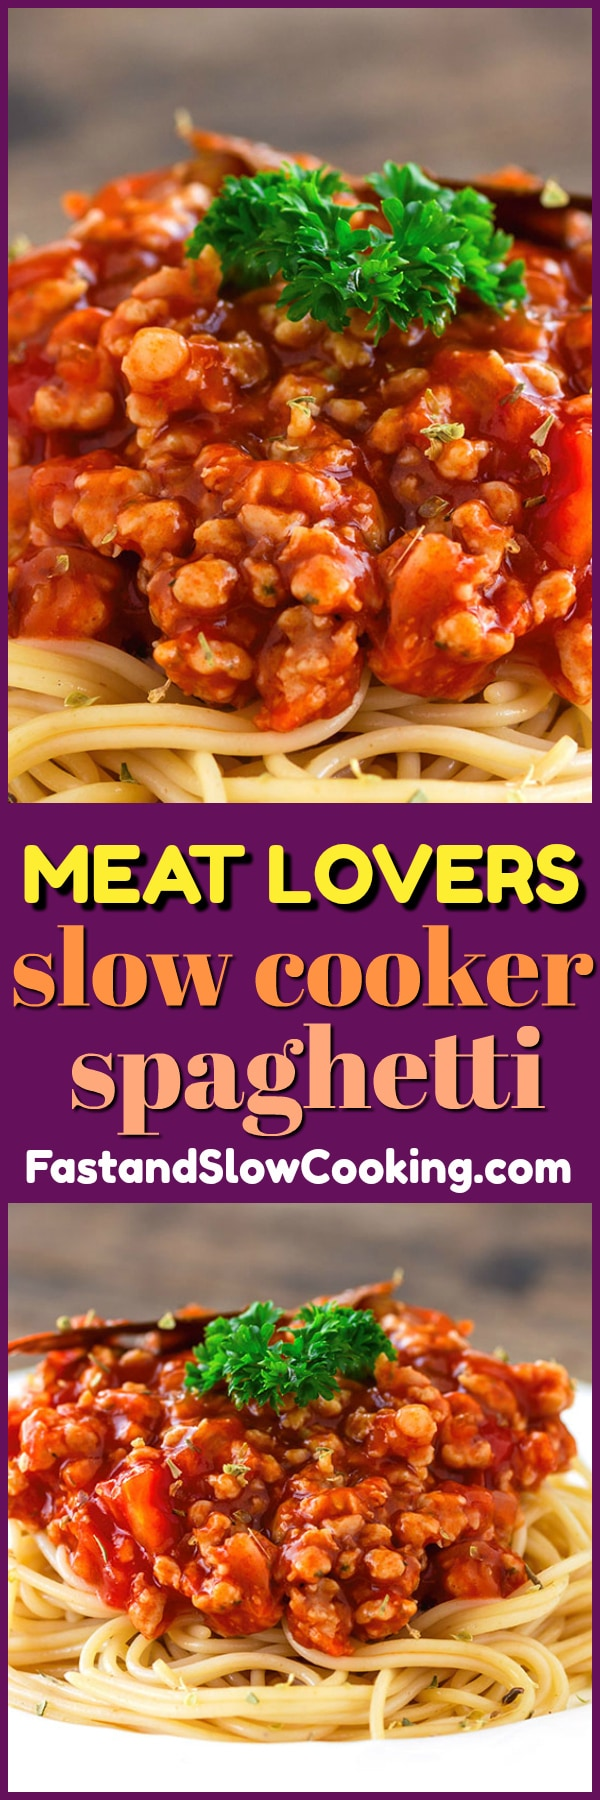 Raise your hand if you are the type of person that loves the Meat Lover's pizza, or Meat Lover's Breakfast Skillet. Did you raise your hand? Then this slow cooker spaghetti sauce is for YOU! #slowcooker #crockpot #spaghetti #sauce #recipe